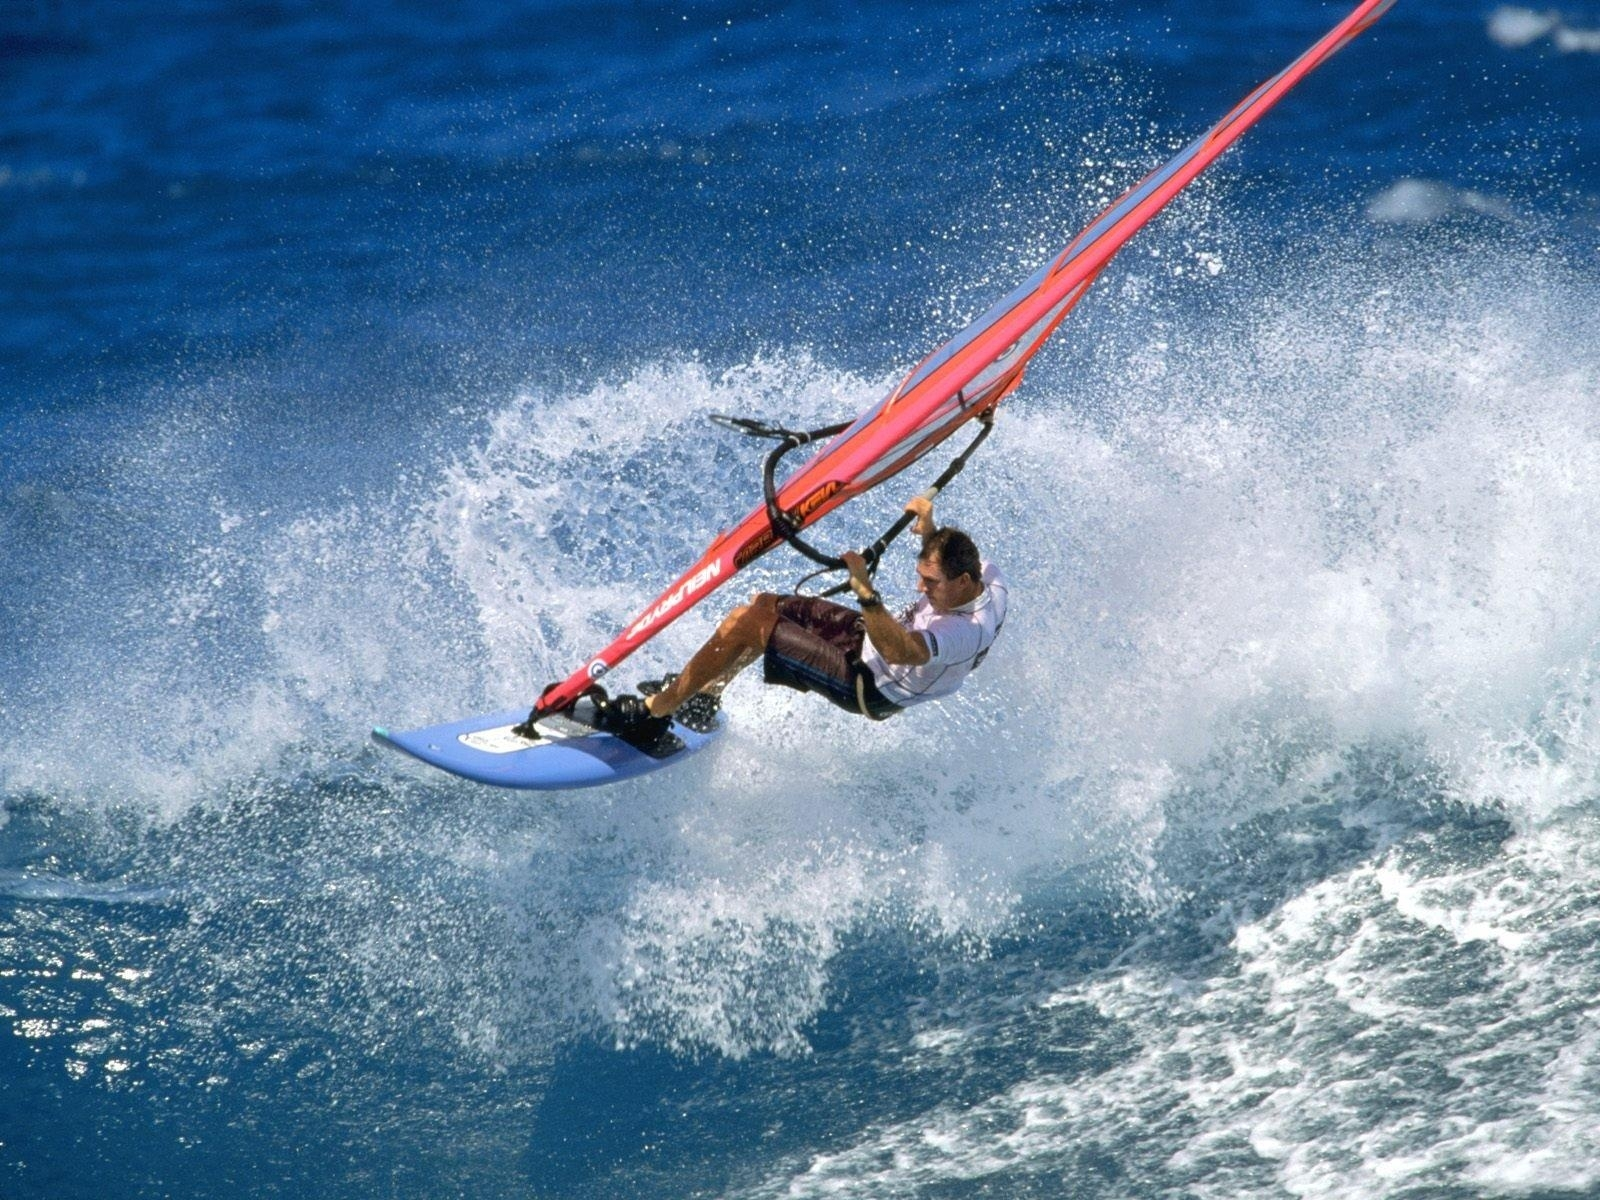 9247 download wallpaper Sports, Water, Sea, Men, Windsurfing screensavers and pictures for free